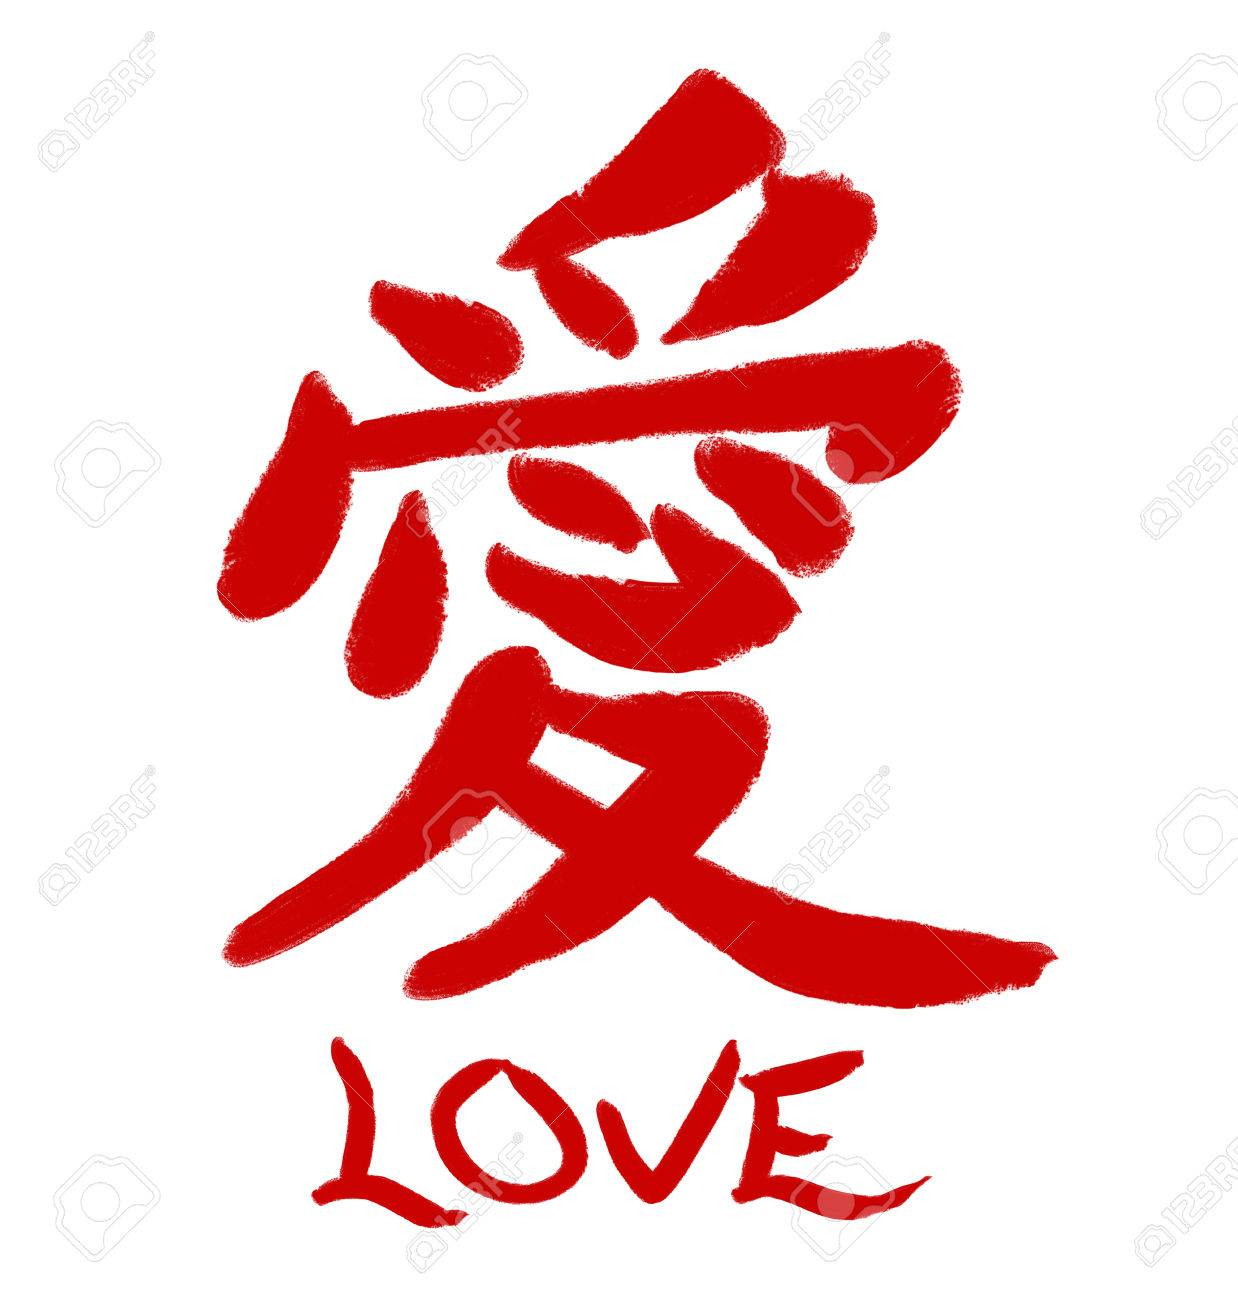 Stock Photo Traditional Chinese And Japaneseigraphy Character For Love With The English Word Underneath